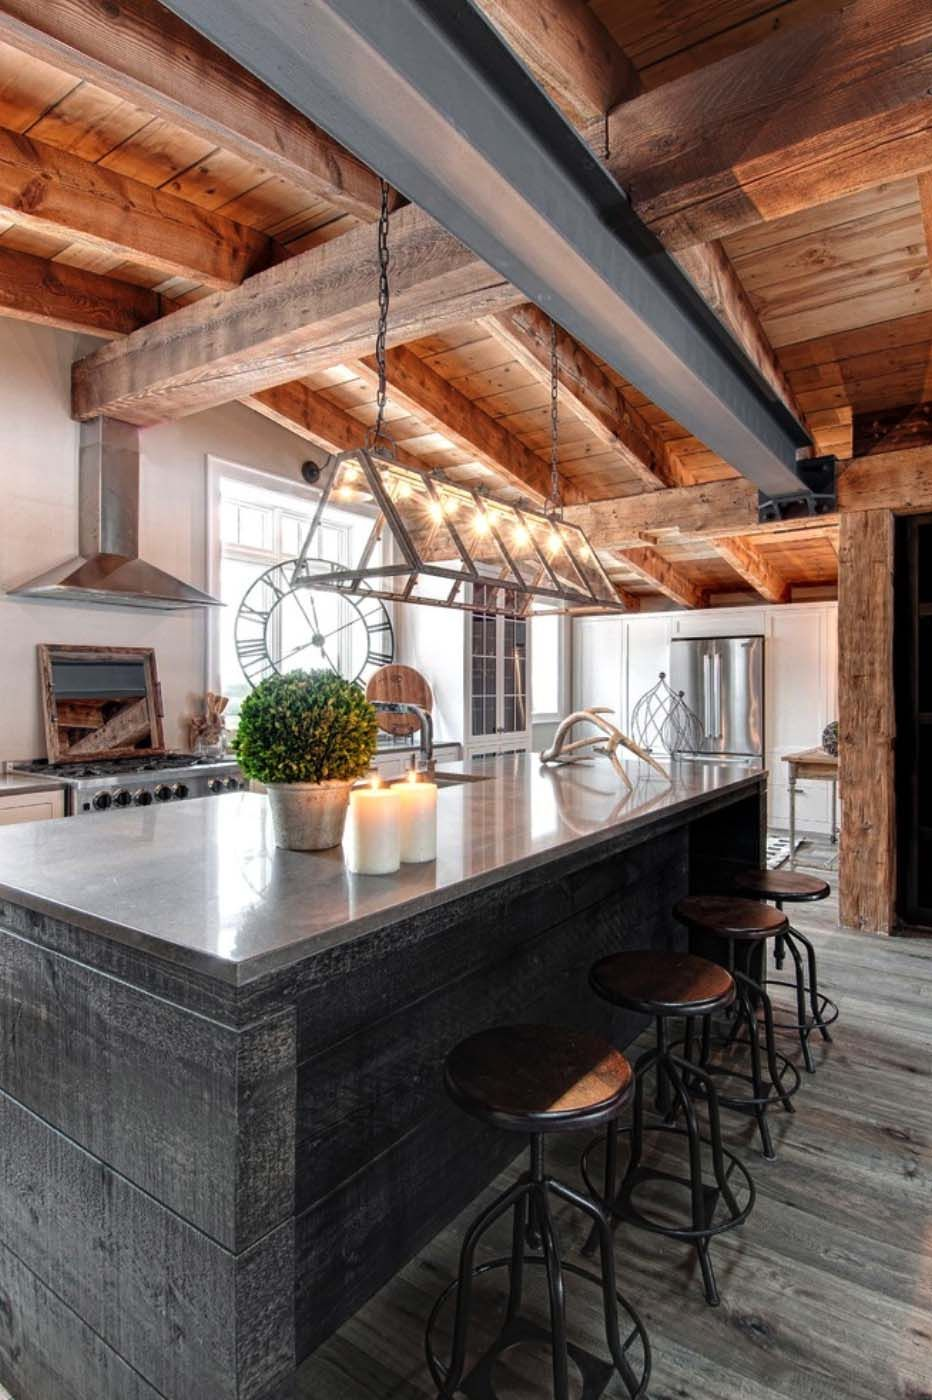 Luxury Canadian Home Reveals Splendid Rustic Modern Aesthetic